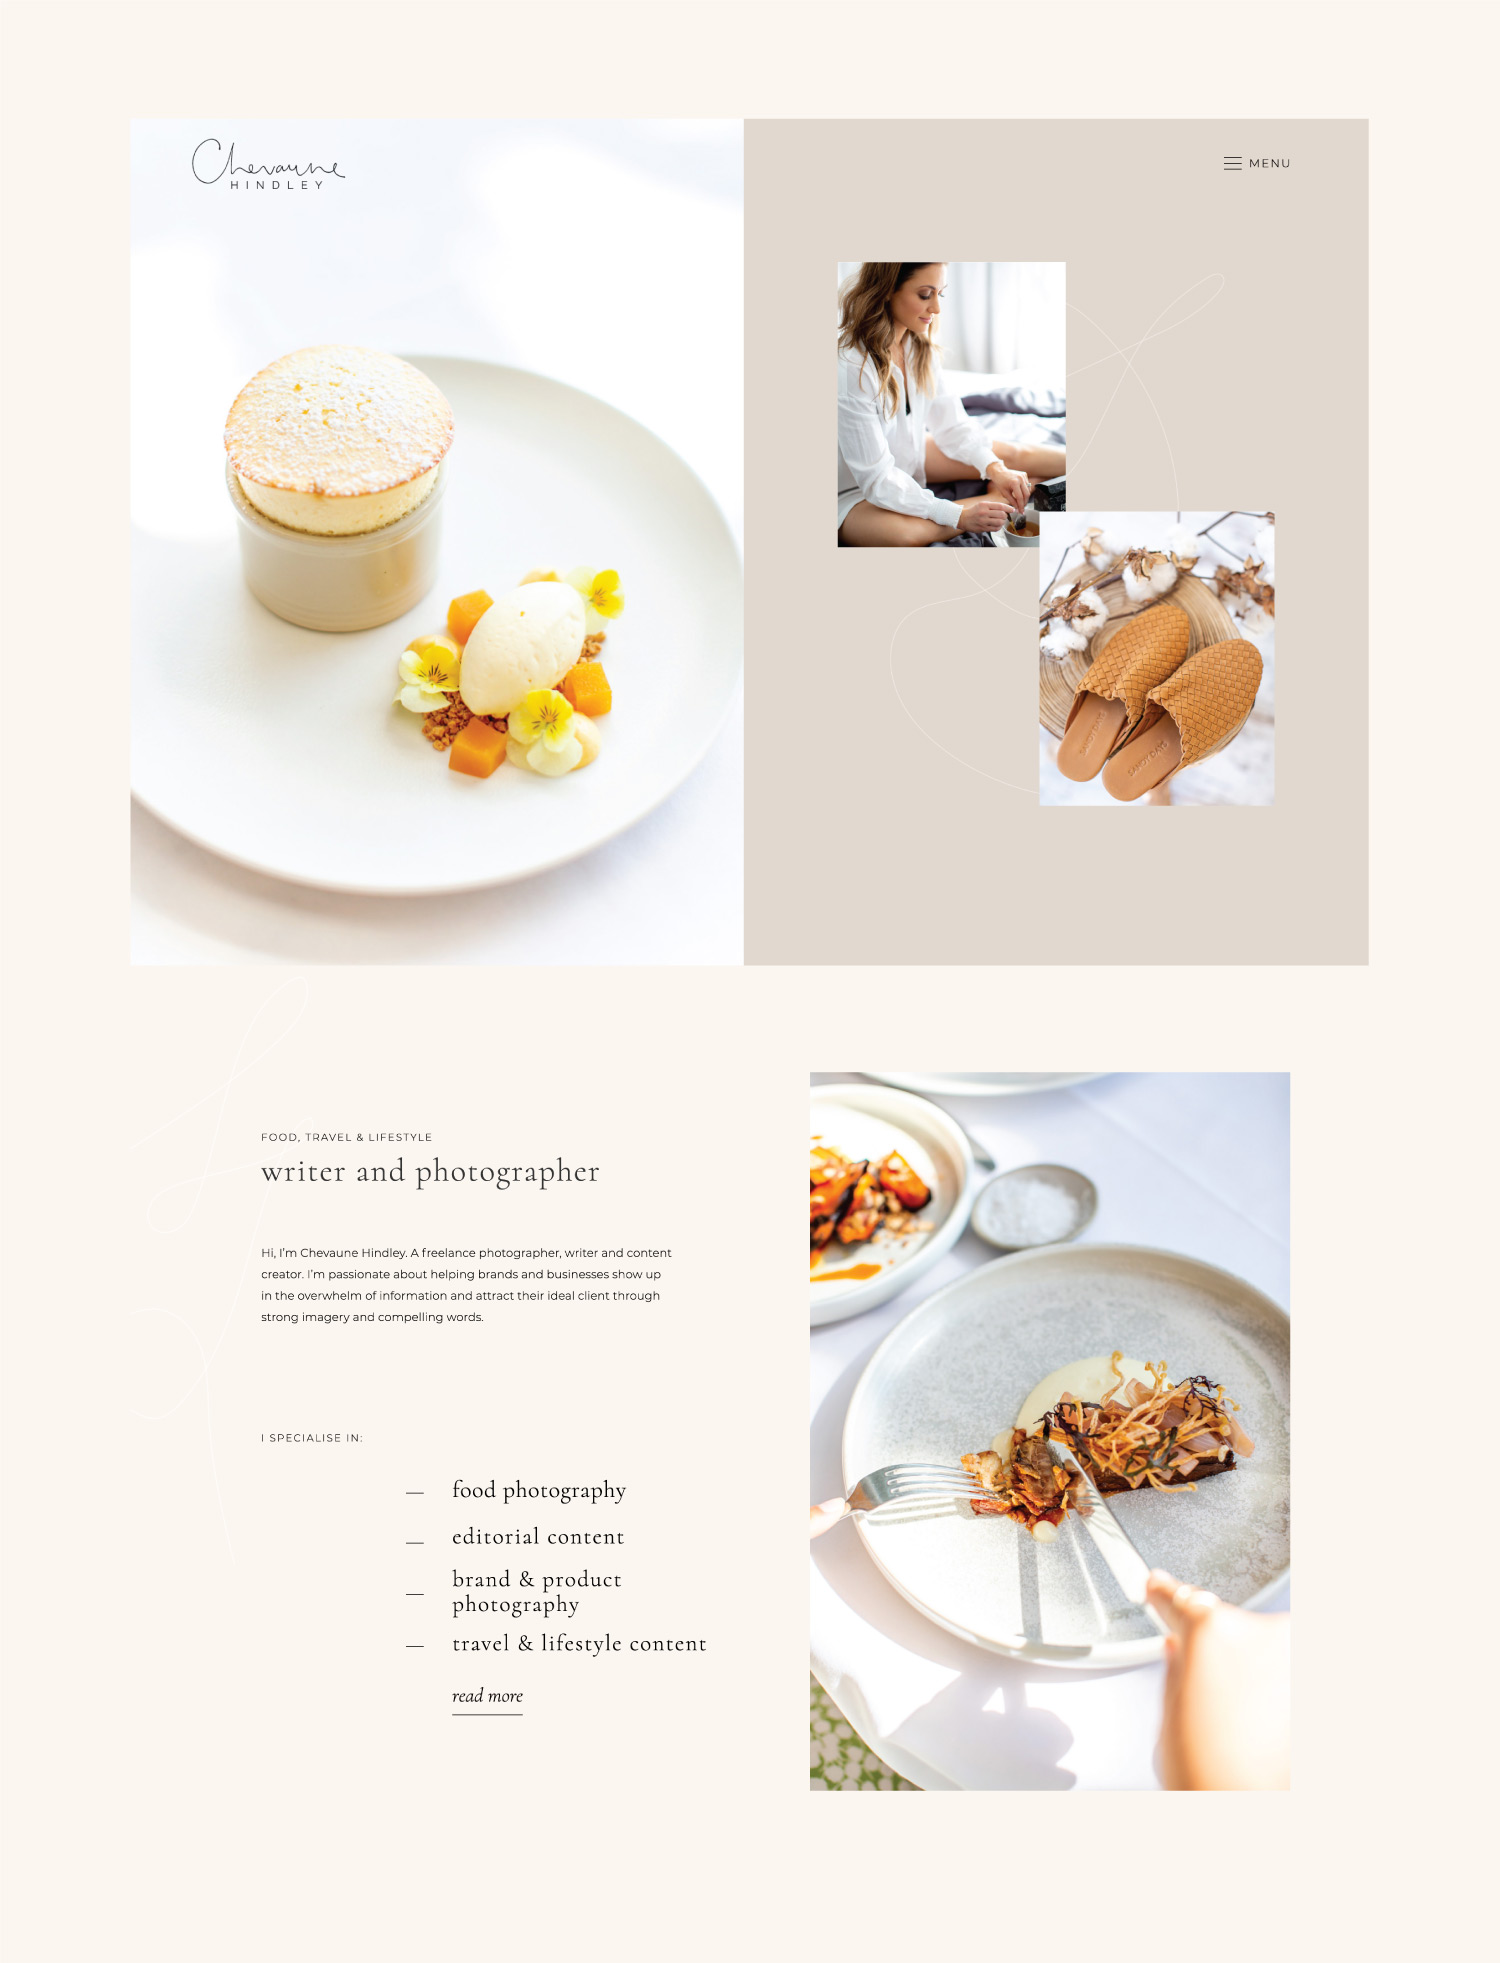 Website home page design for Chevaune Hindley